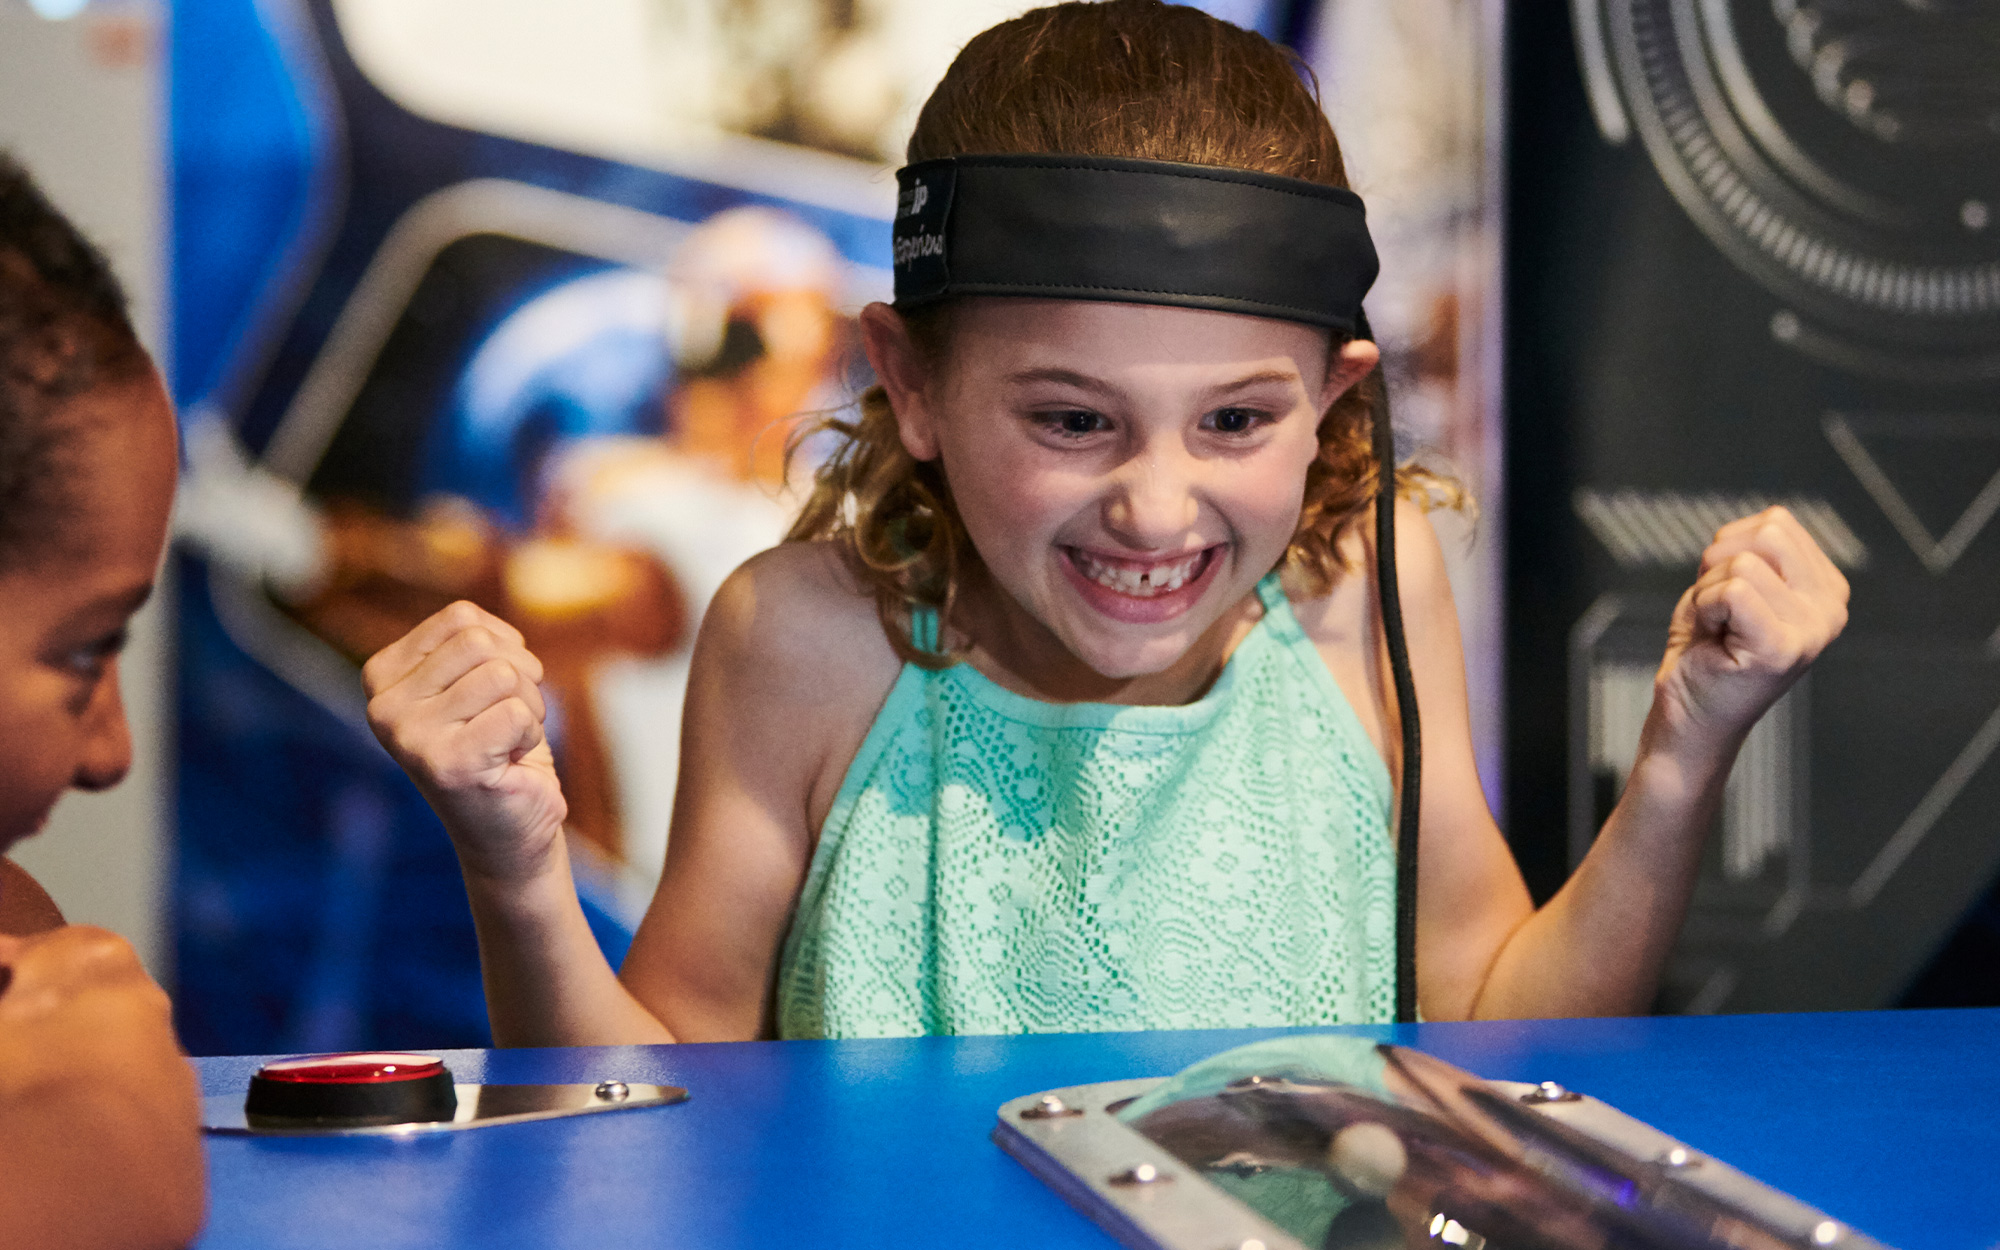 A girl cheering excitedly as she plays a game, she is wearing a band around her head and concentrating on the table in front of her.